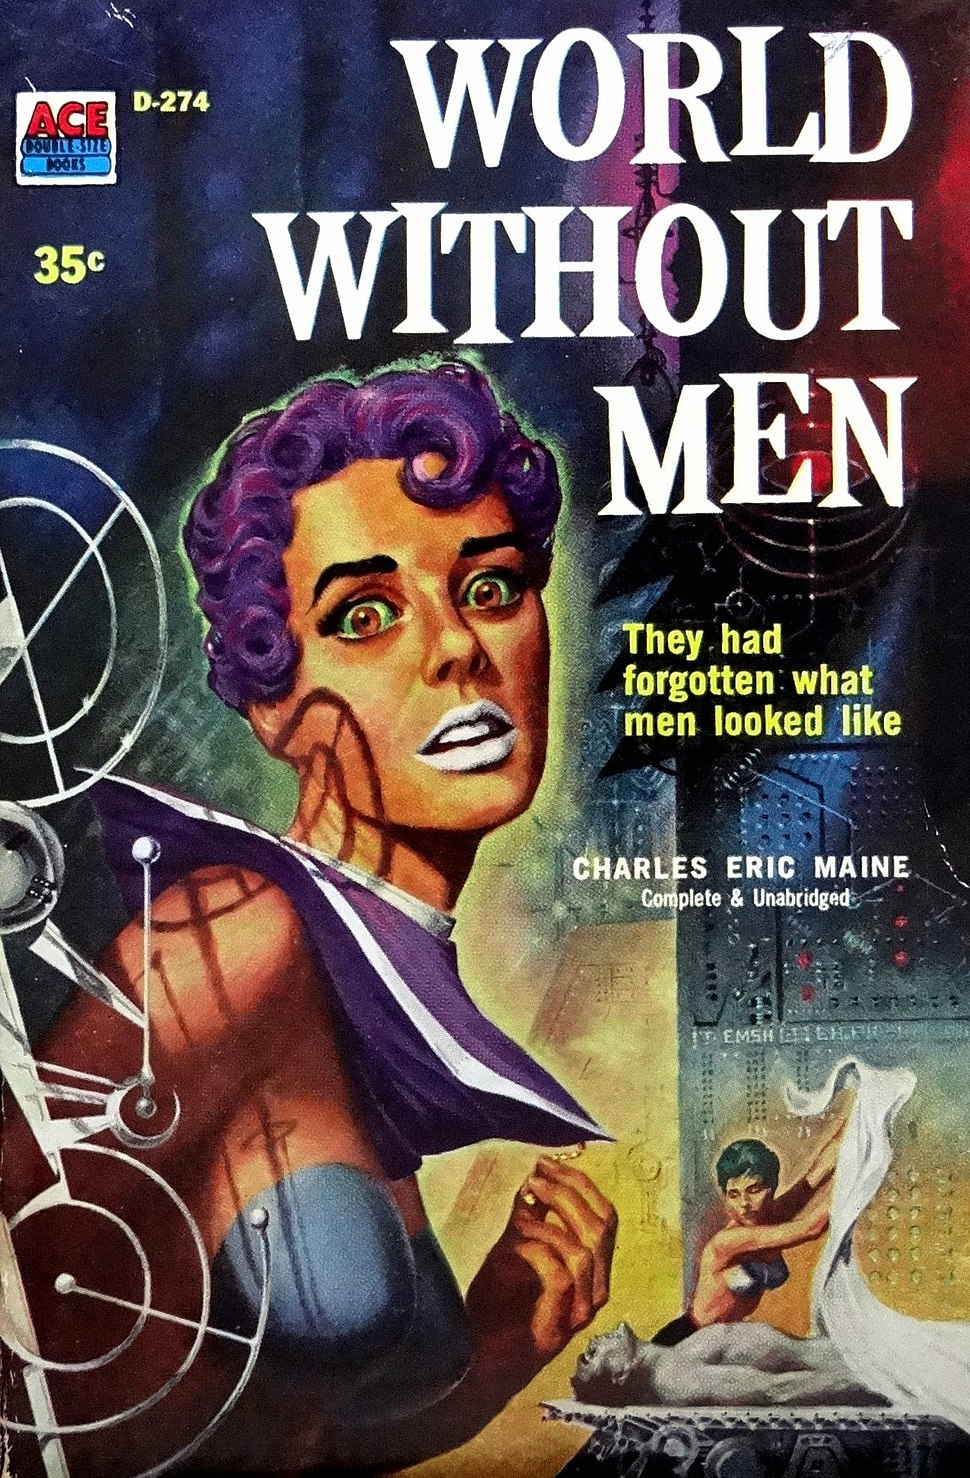 Cover of World Without Men by Charles Eric Maine - Illustration by Ed Emshwiller - Ace Books 1958